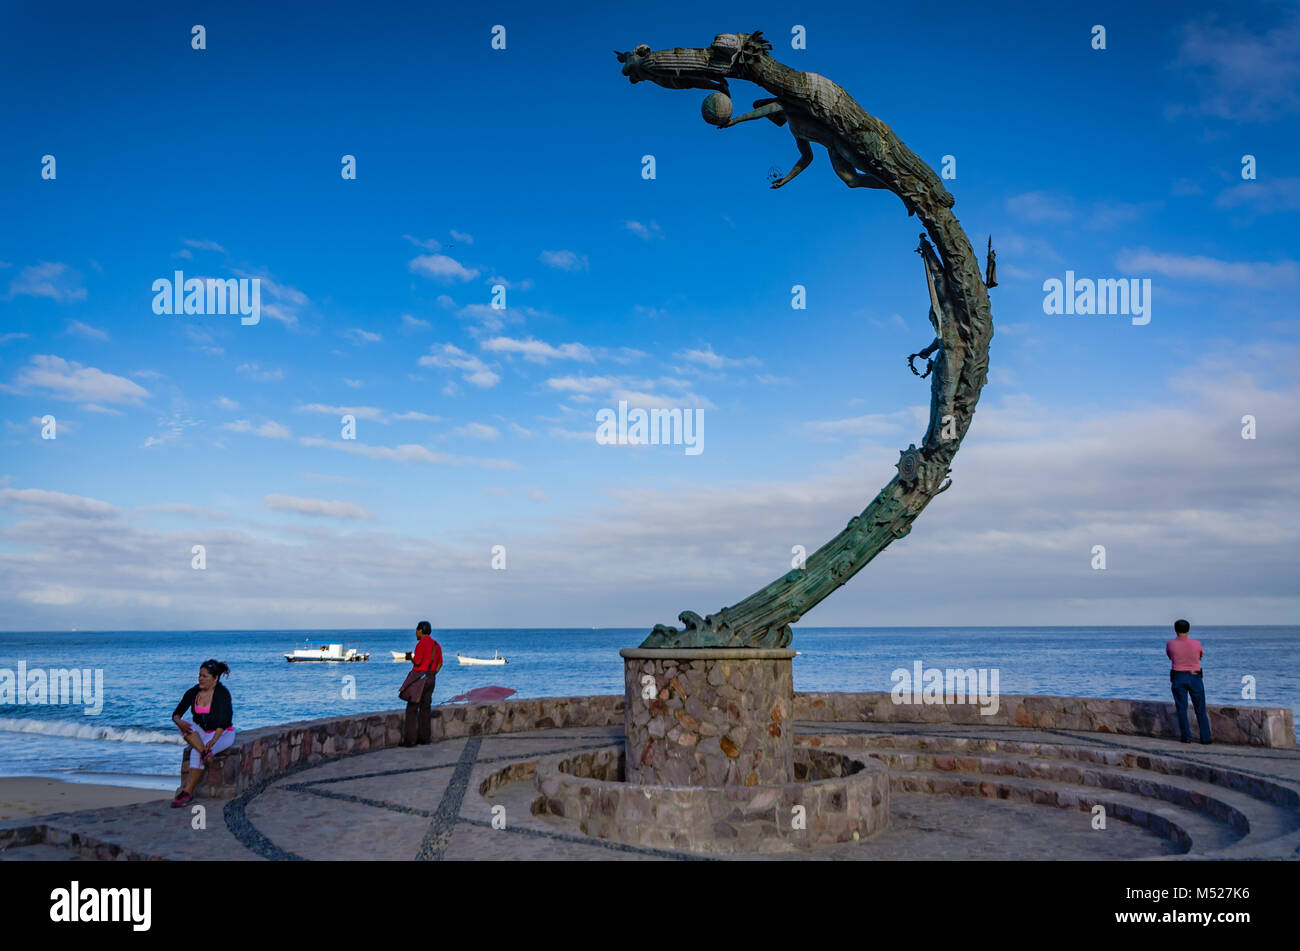 Bronze sculpture by Mathis Lidice, on the Malecon in Puerto Vallarta, Mexico. The  spiralling sculpture represents Stock Photo